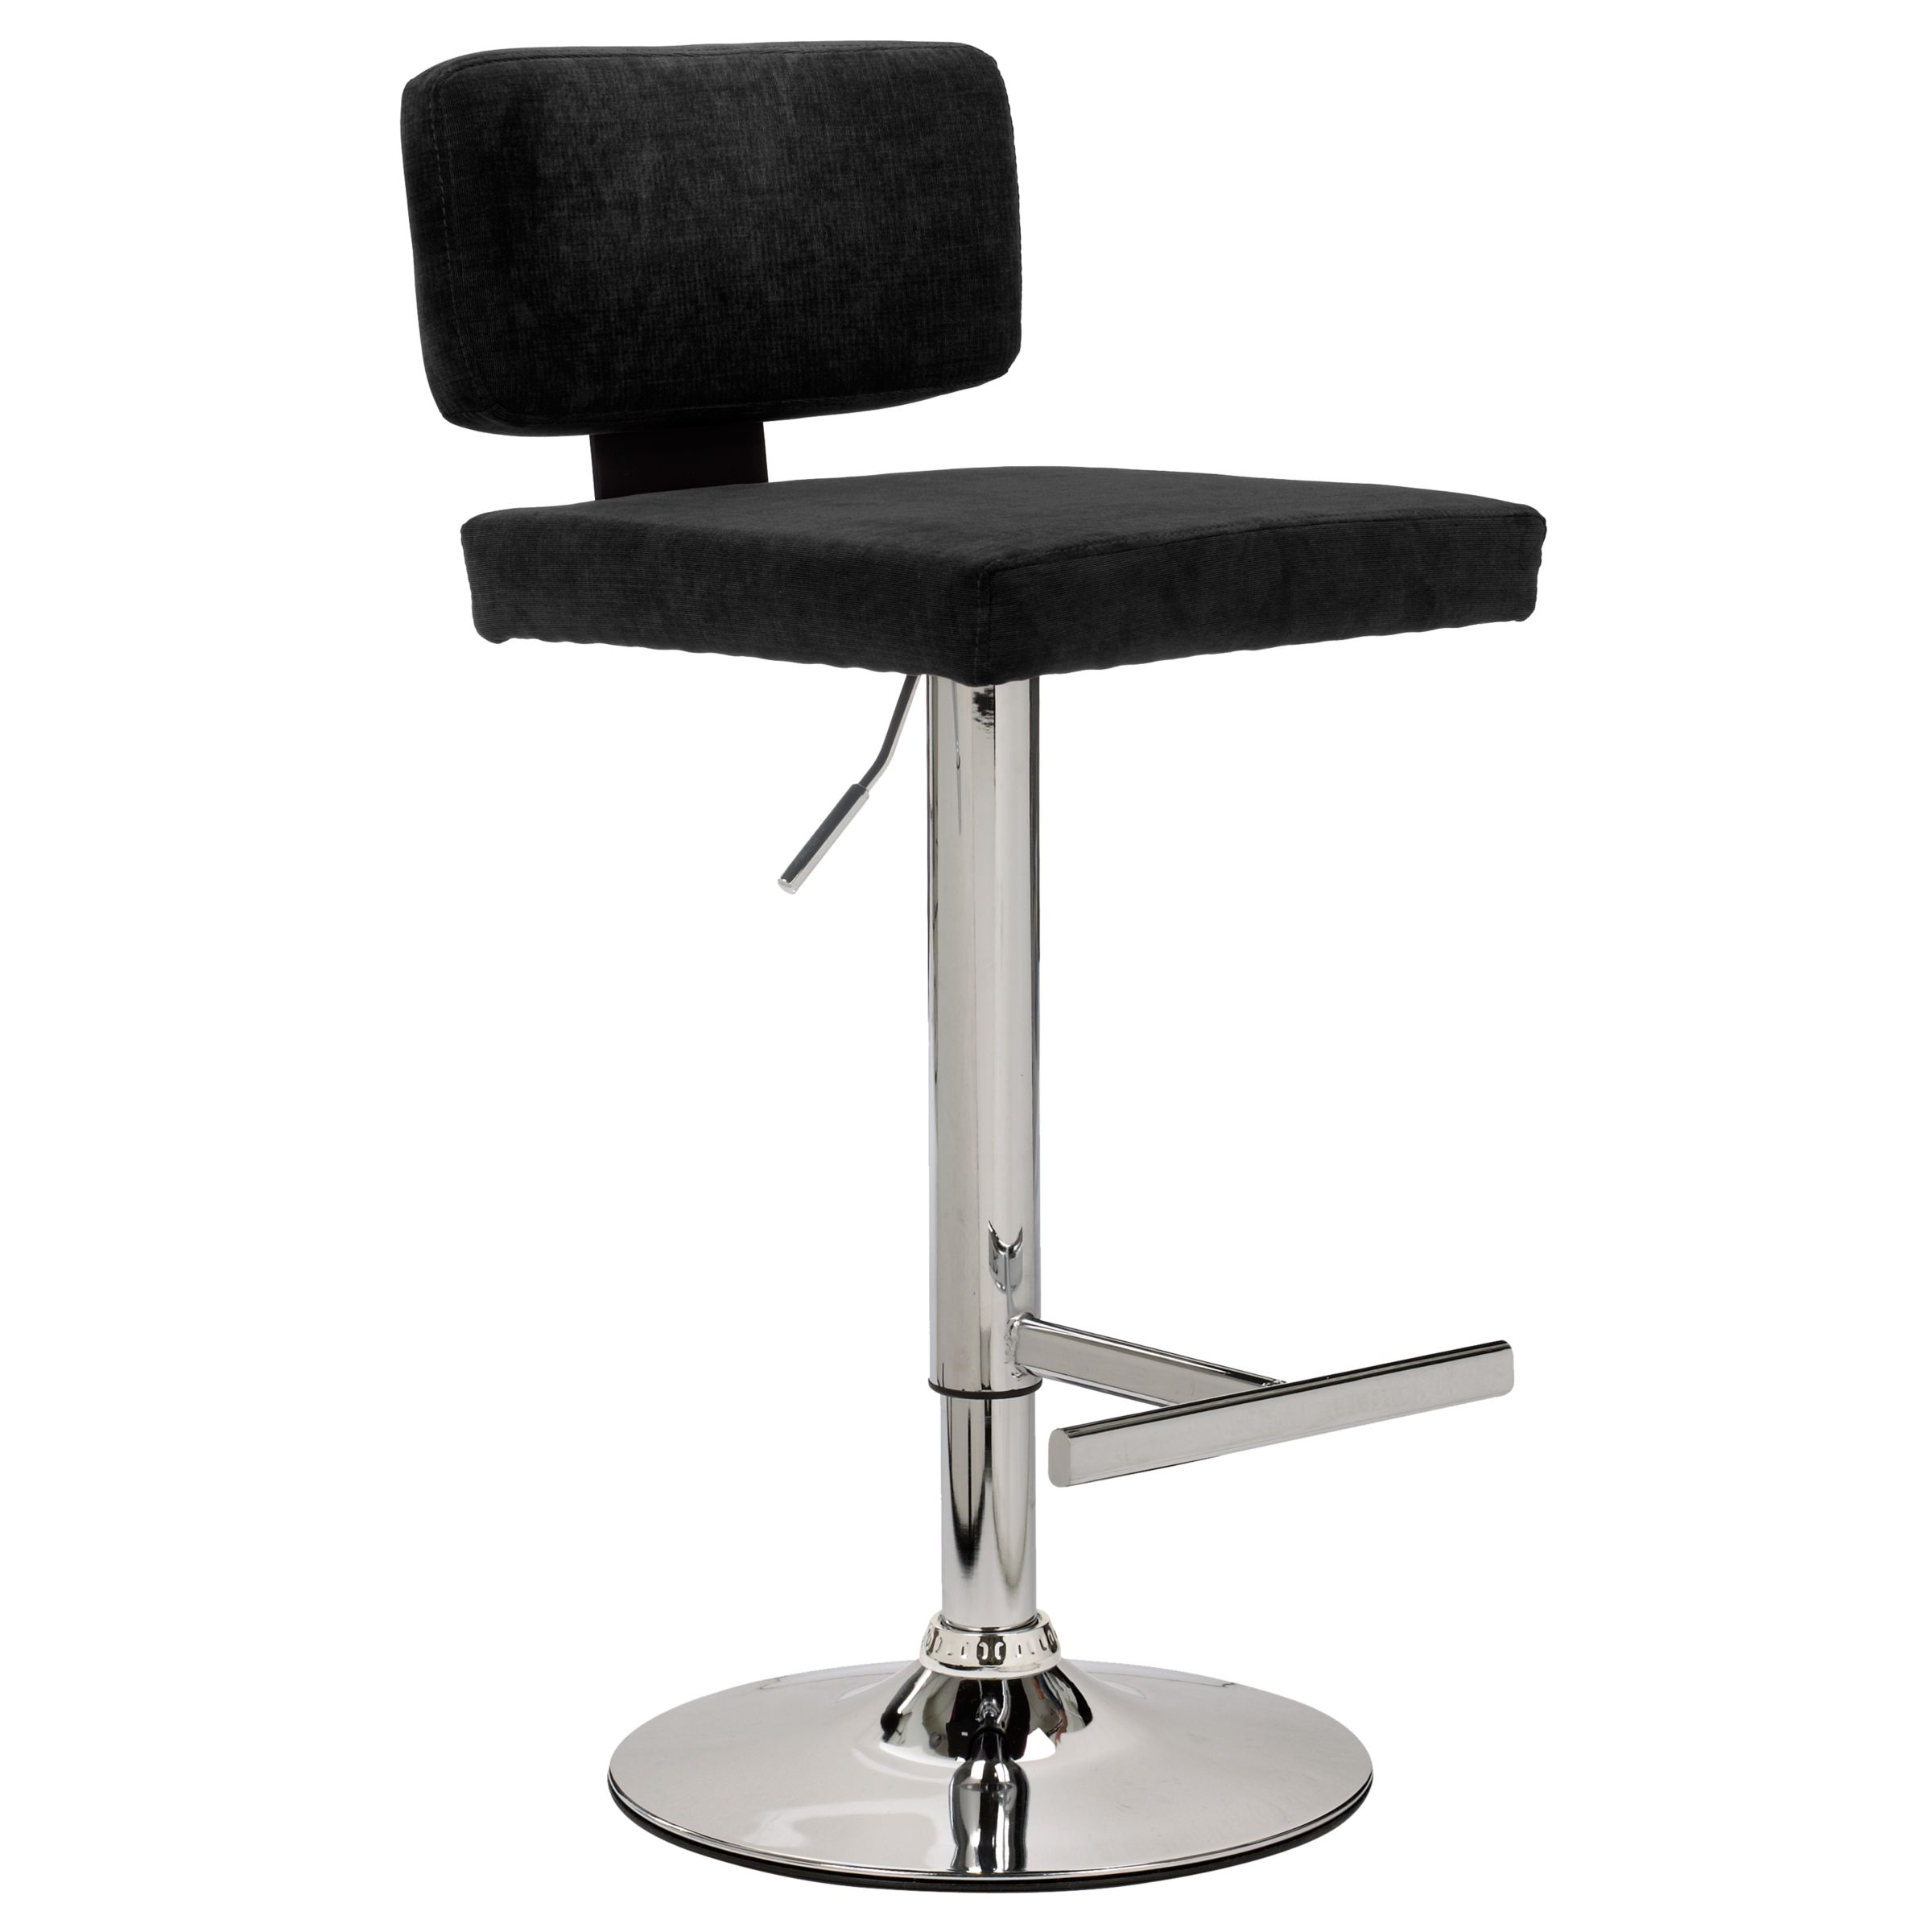 Black bar stool Shop for cheap Chairs and Save online : 231527276zoom from badge.priceinspector.co.uk size 1600 x 1600 jpeg 133kB